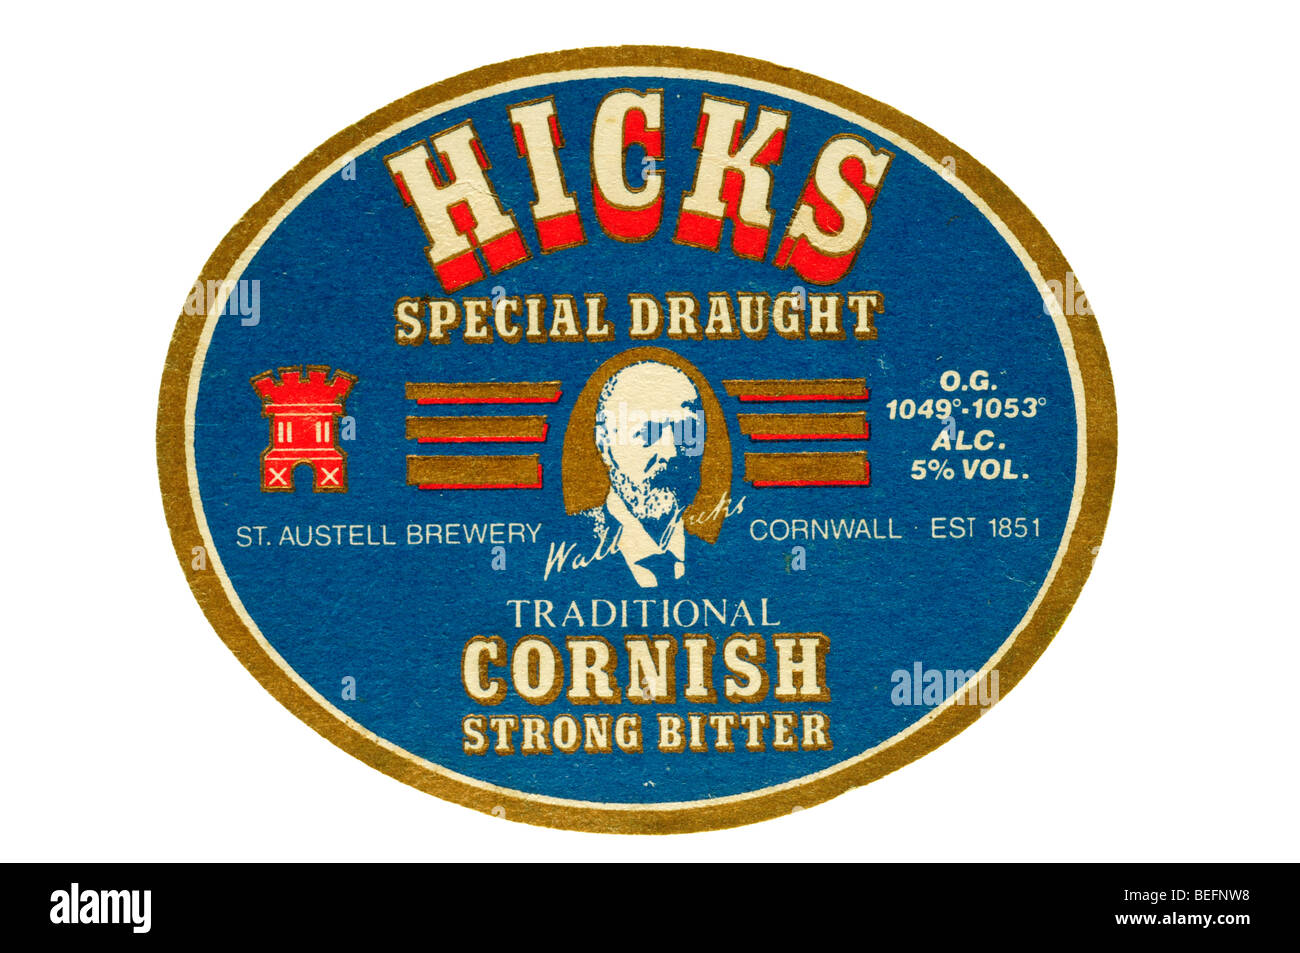 hicks special draught traditional cornish strong bitter - Stock Image